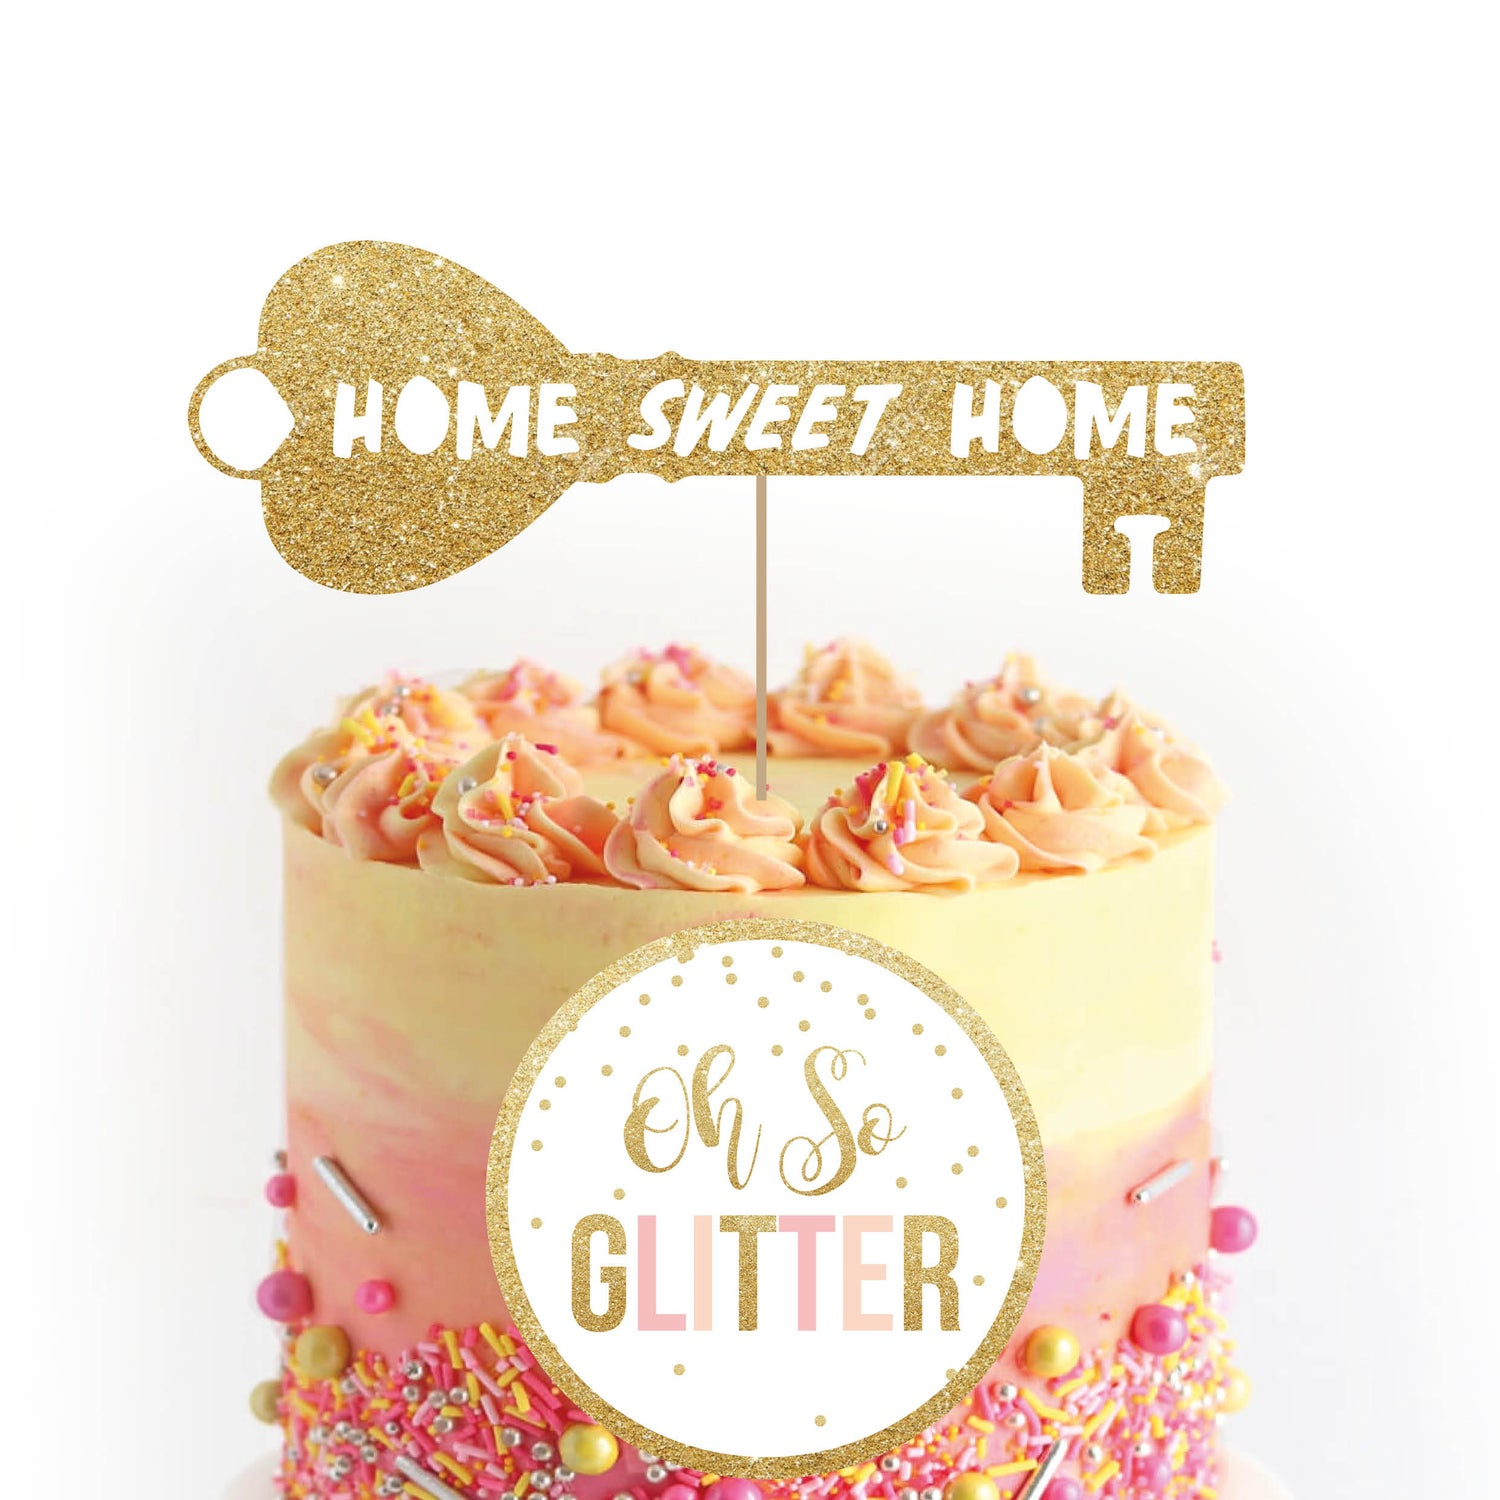 Image of Home Sweet Home Key Cake Topper